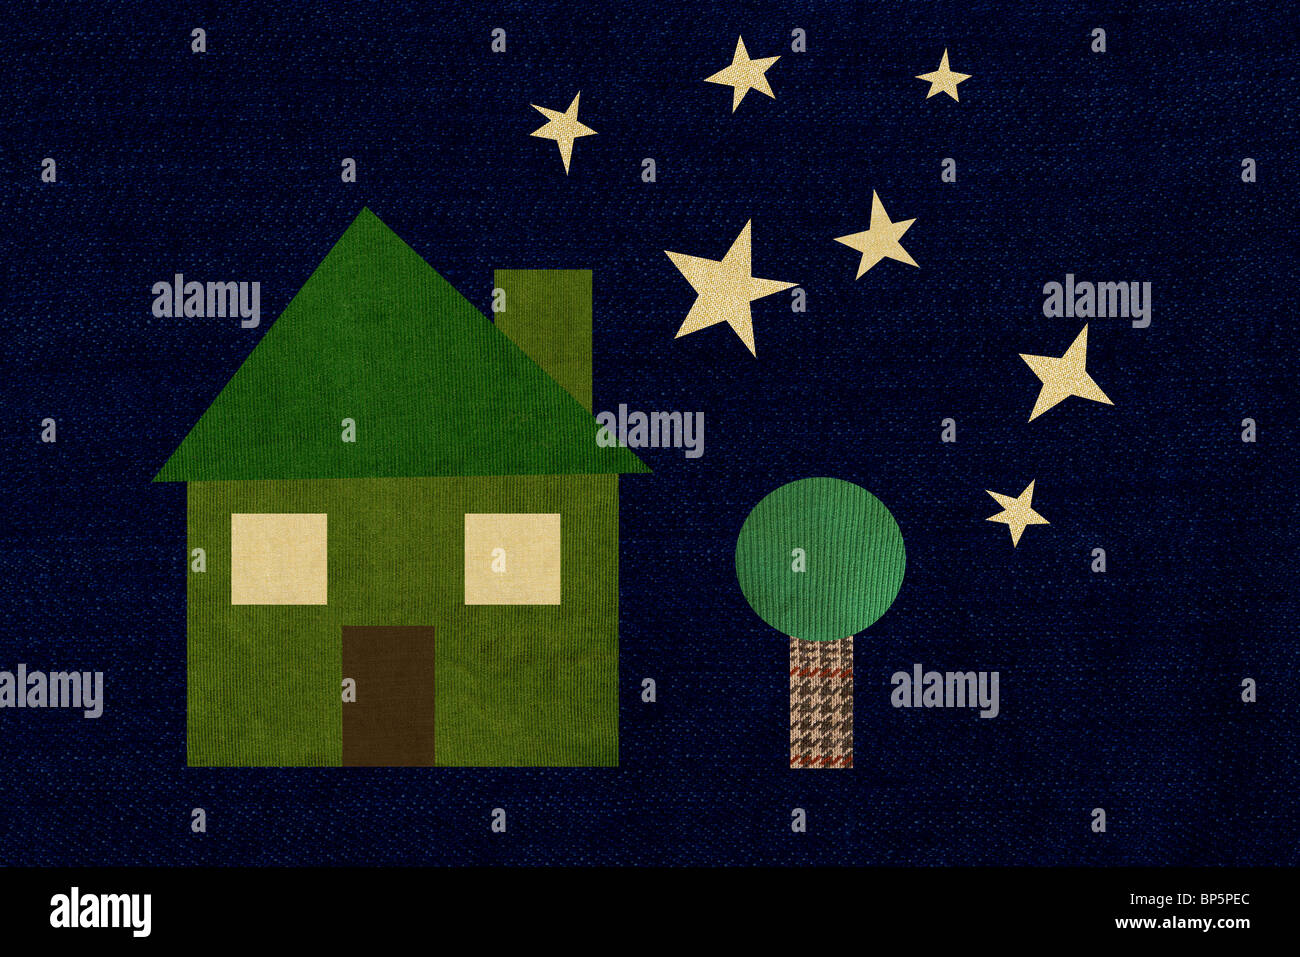 Green coloured house in starry night - Stock Image